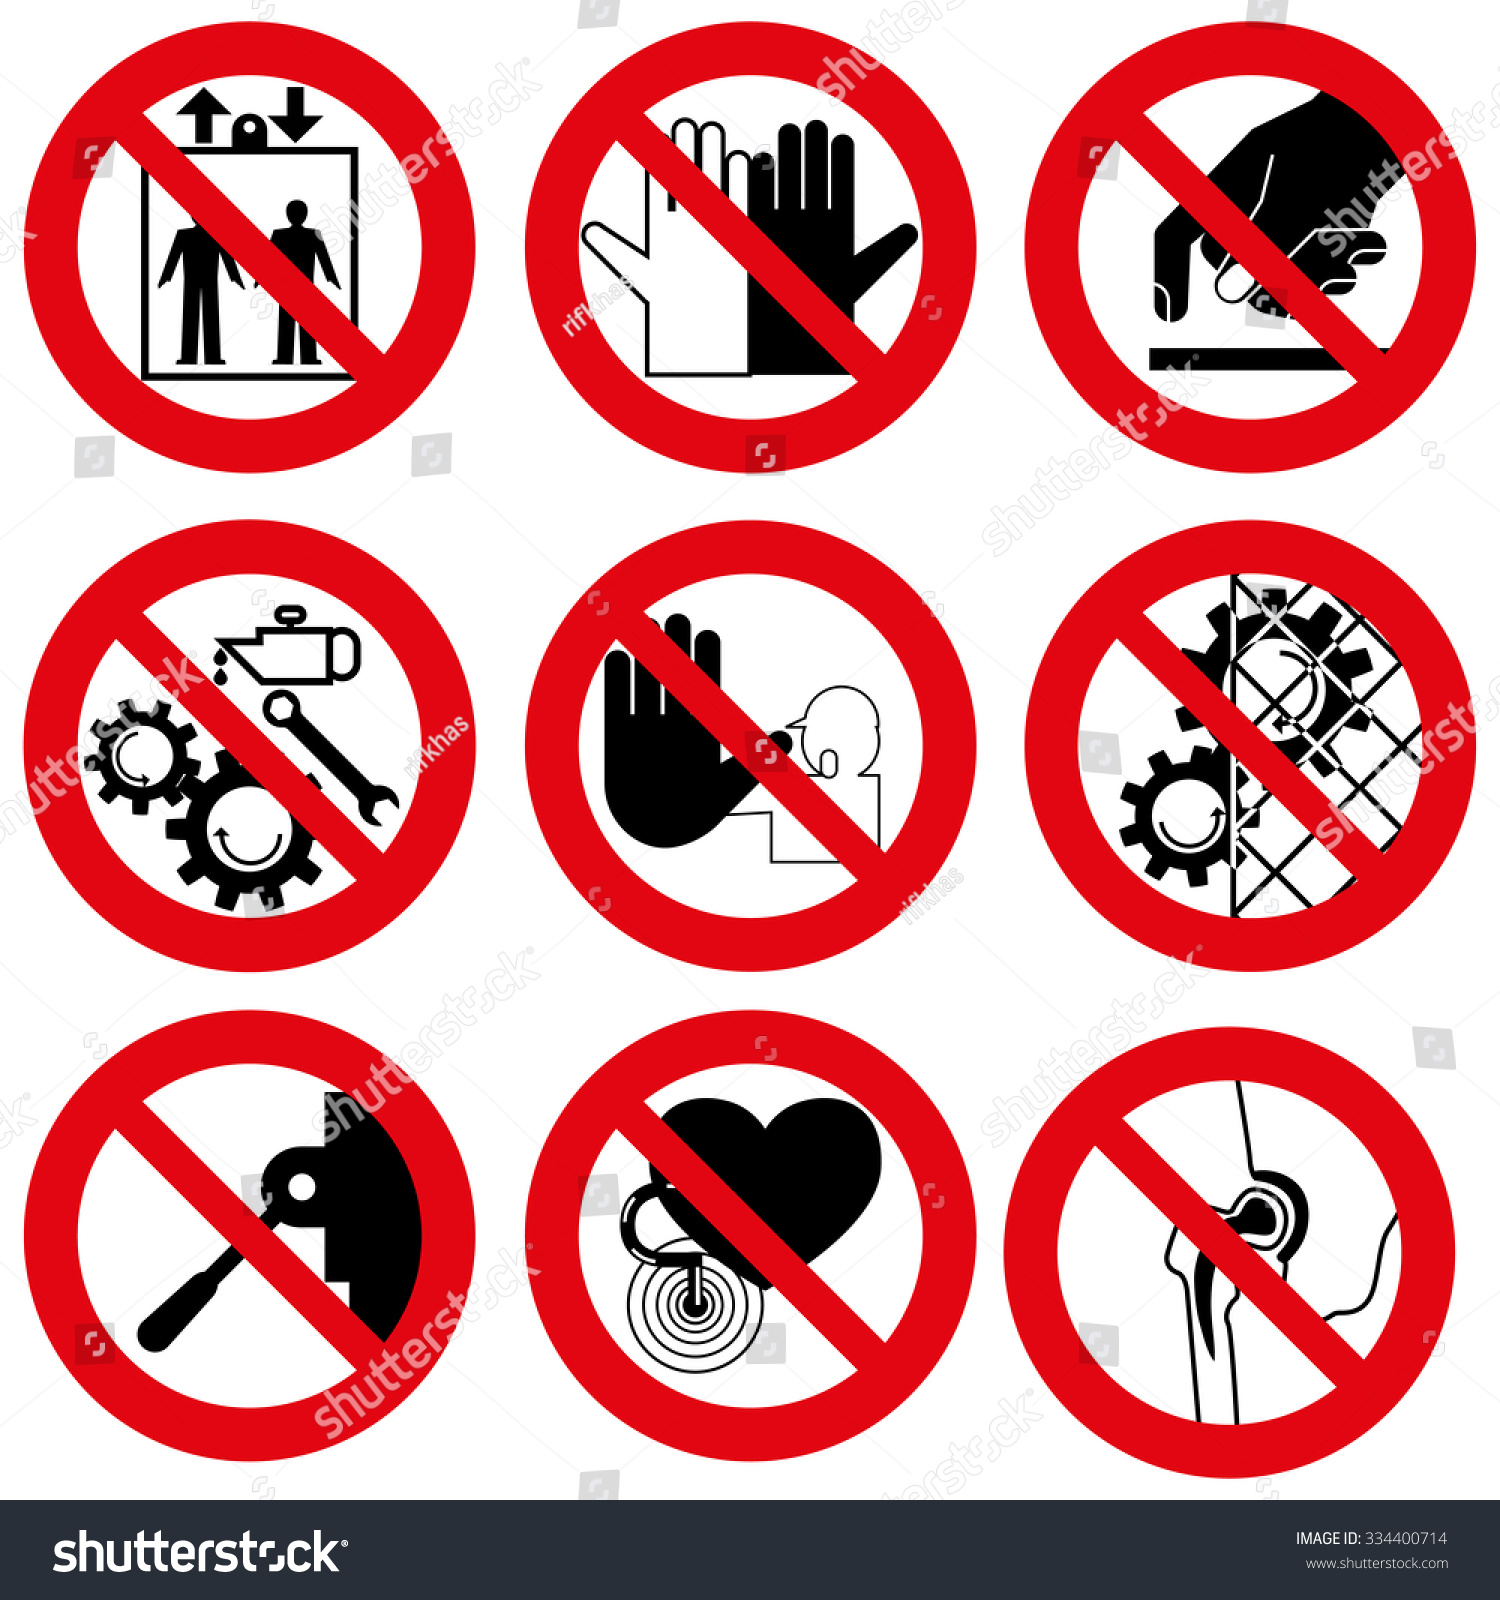 Prohibited Signs Symbols Images Meaning Of Text Symbols